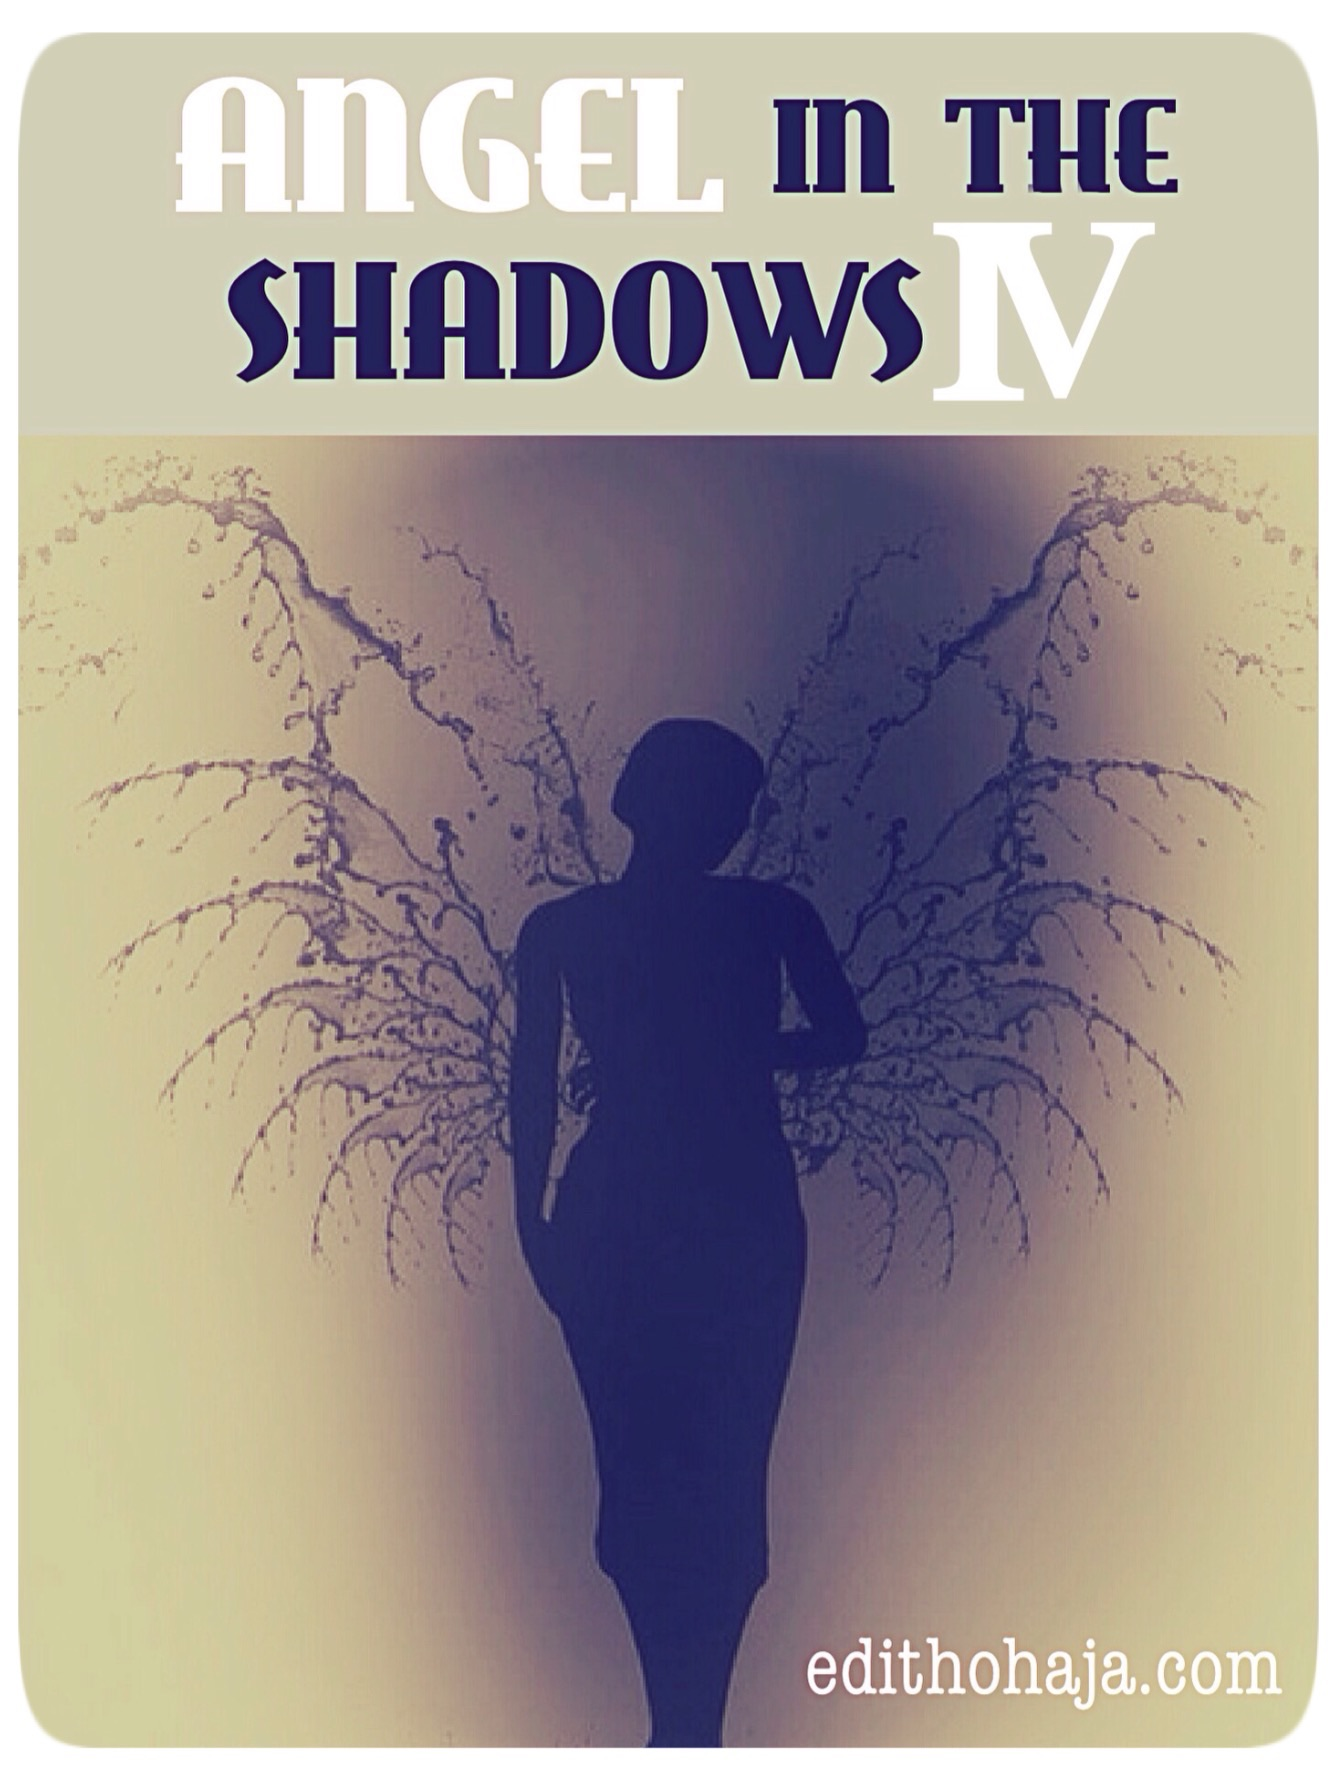 ANGEL IN THE SHADOWS (IV) SHORT STORY